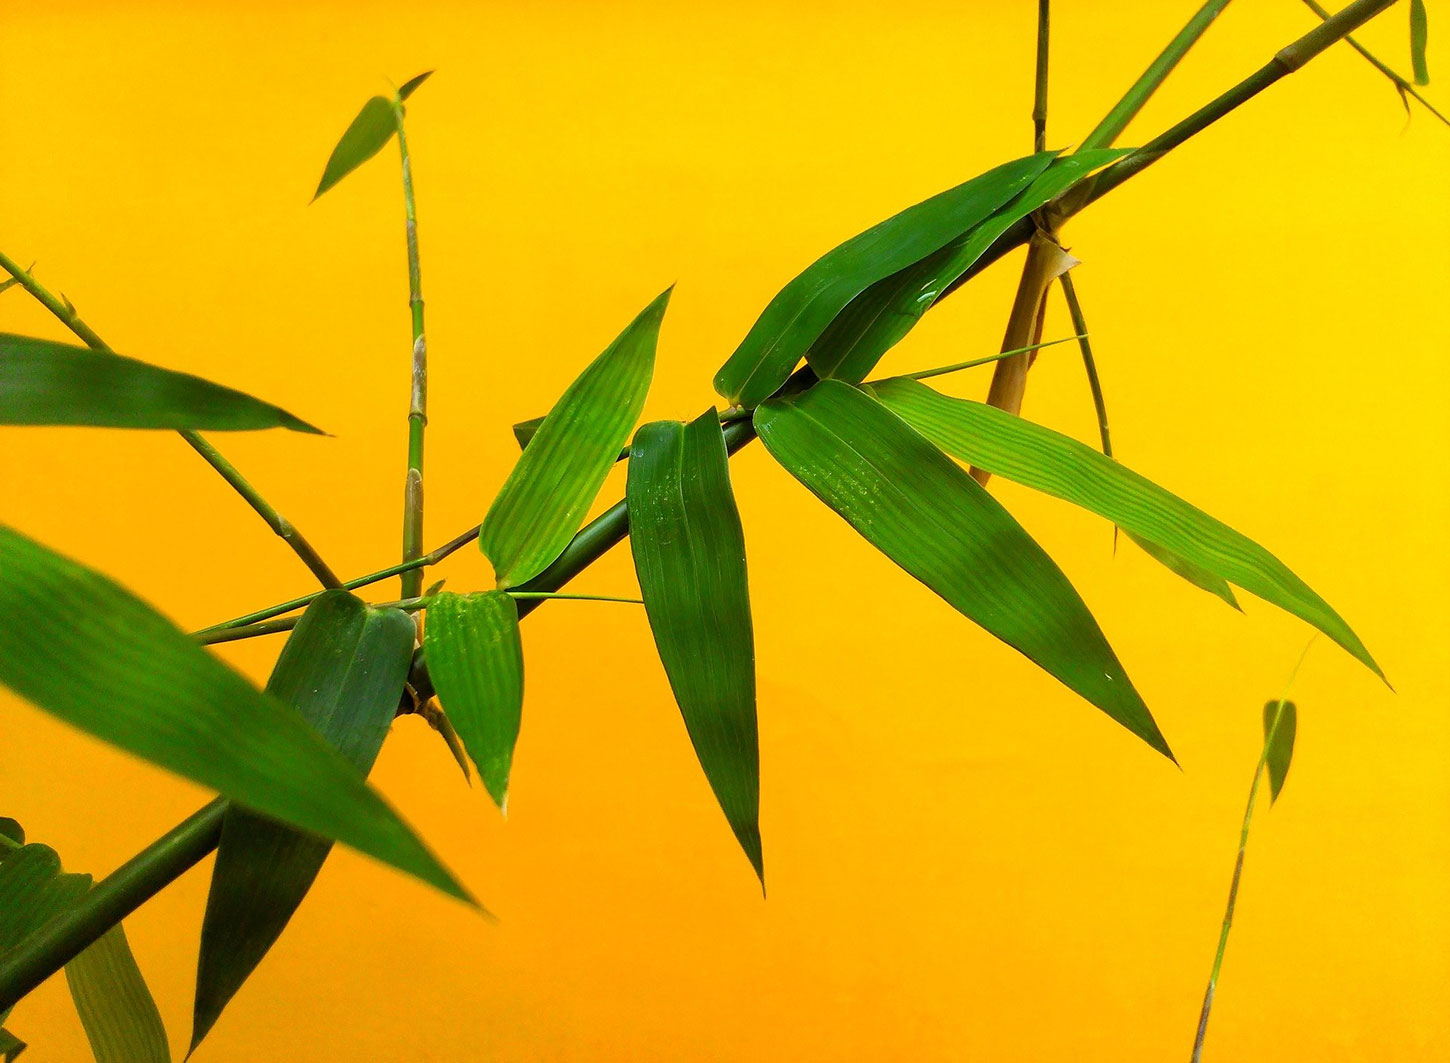 Bamboo on yellow background